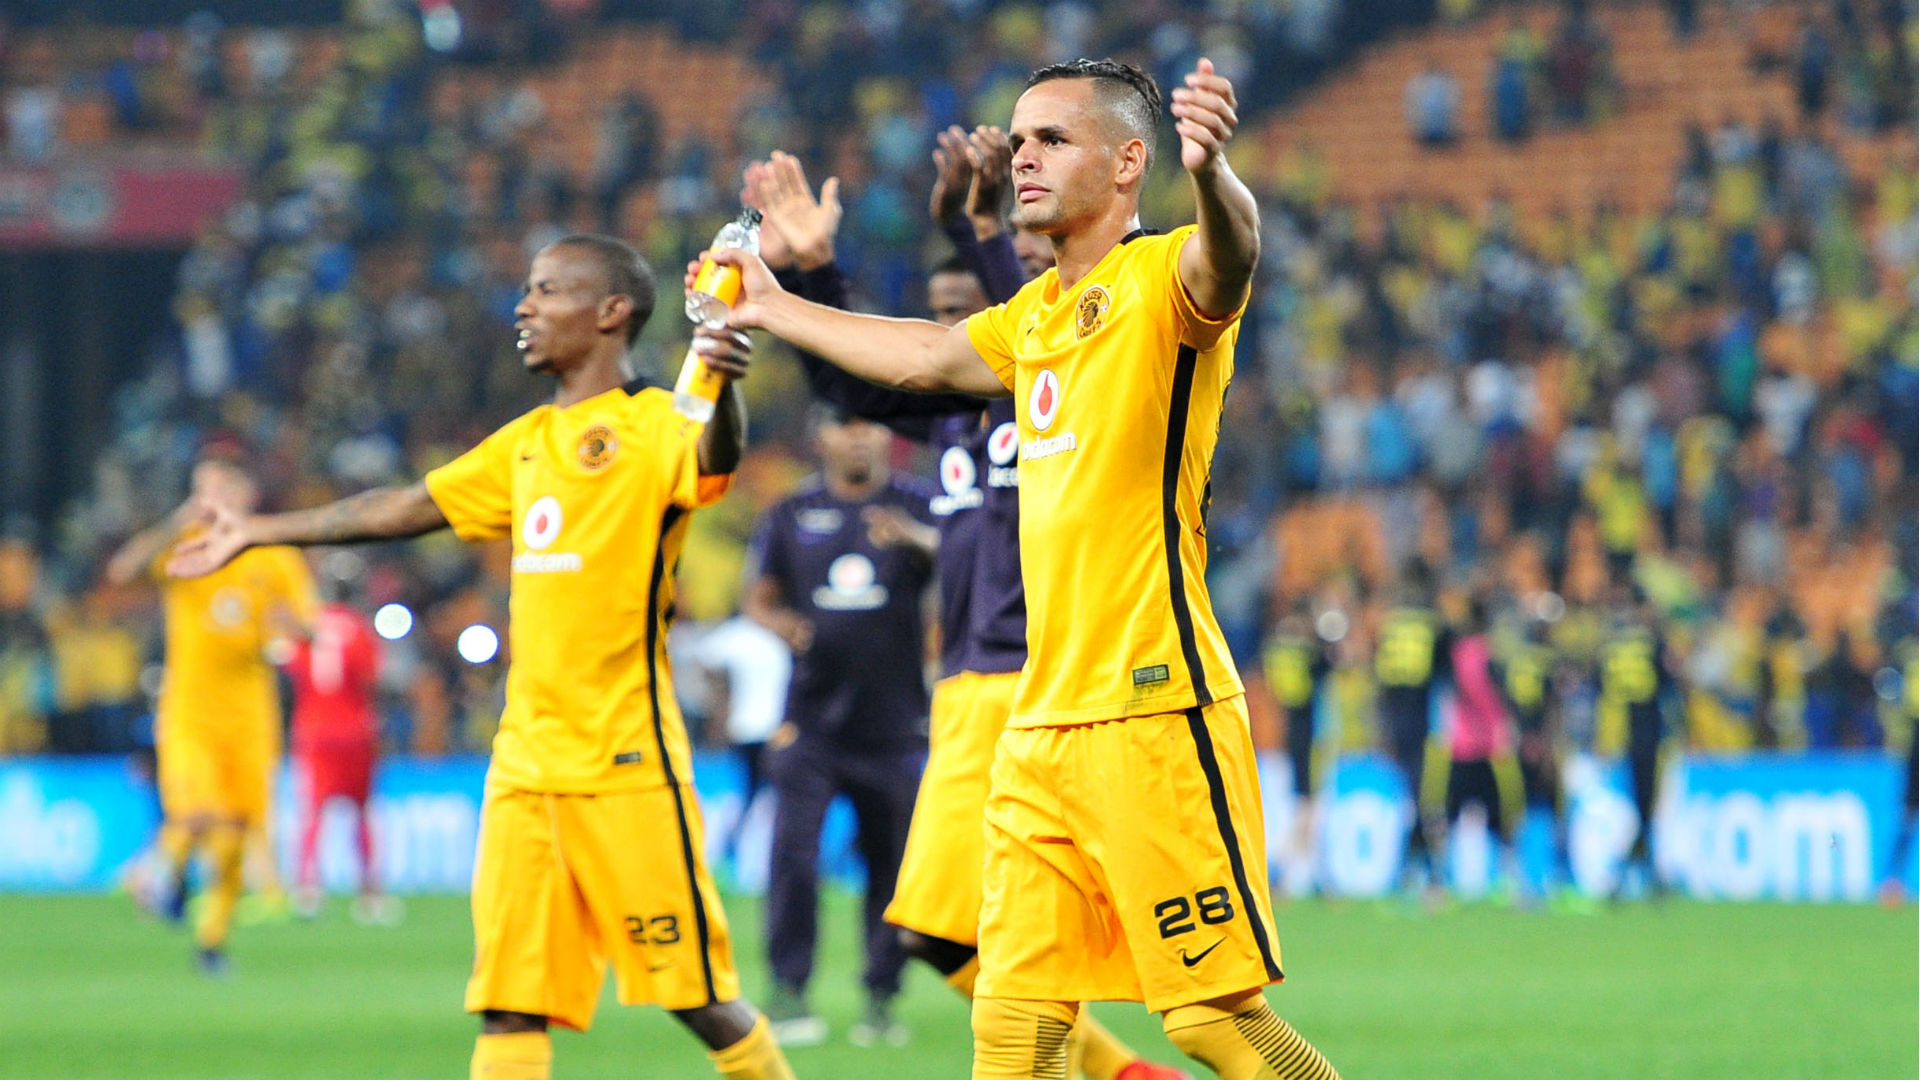 Gustavo Paez and Joseph Molangoane - Kaizer Chiefs.